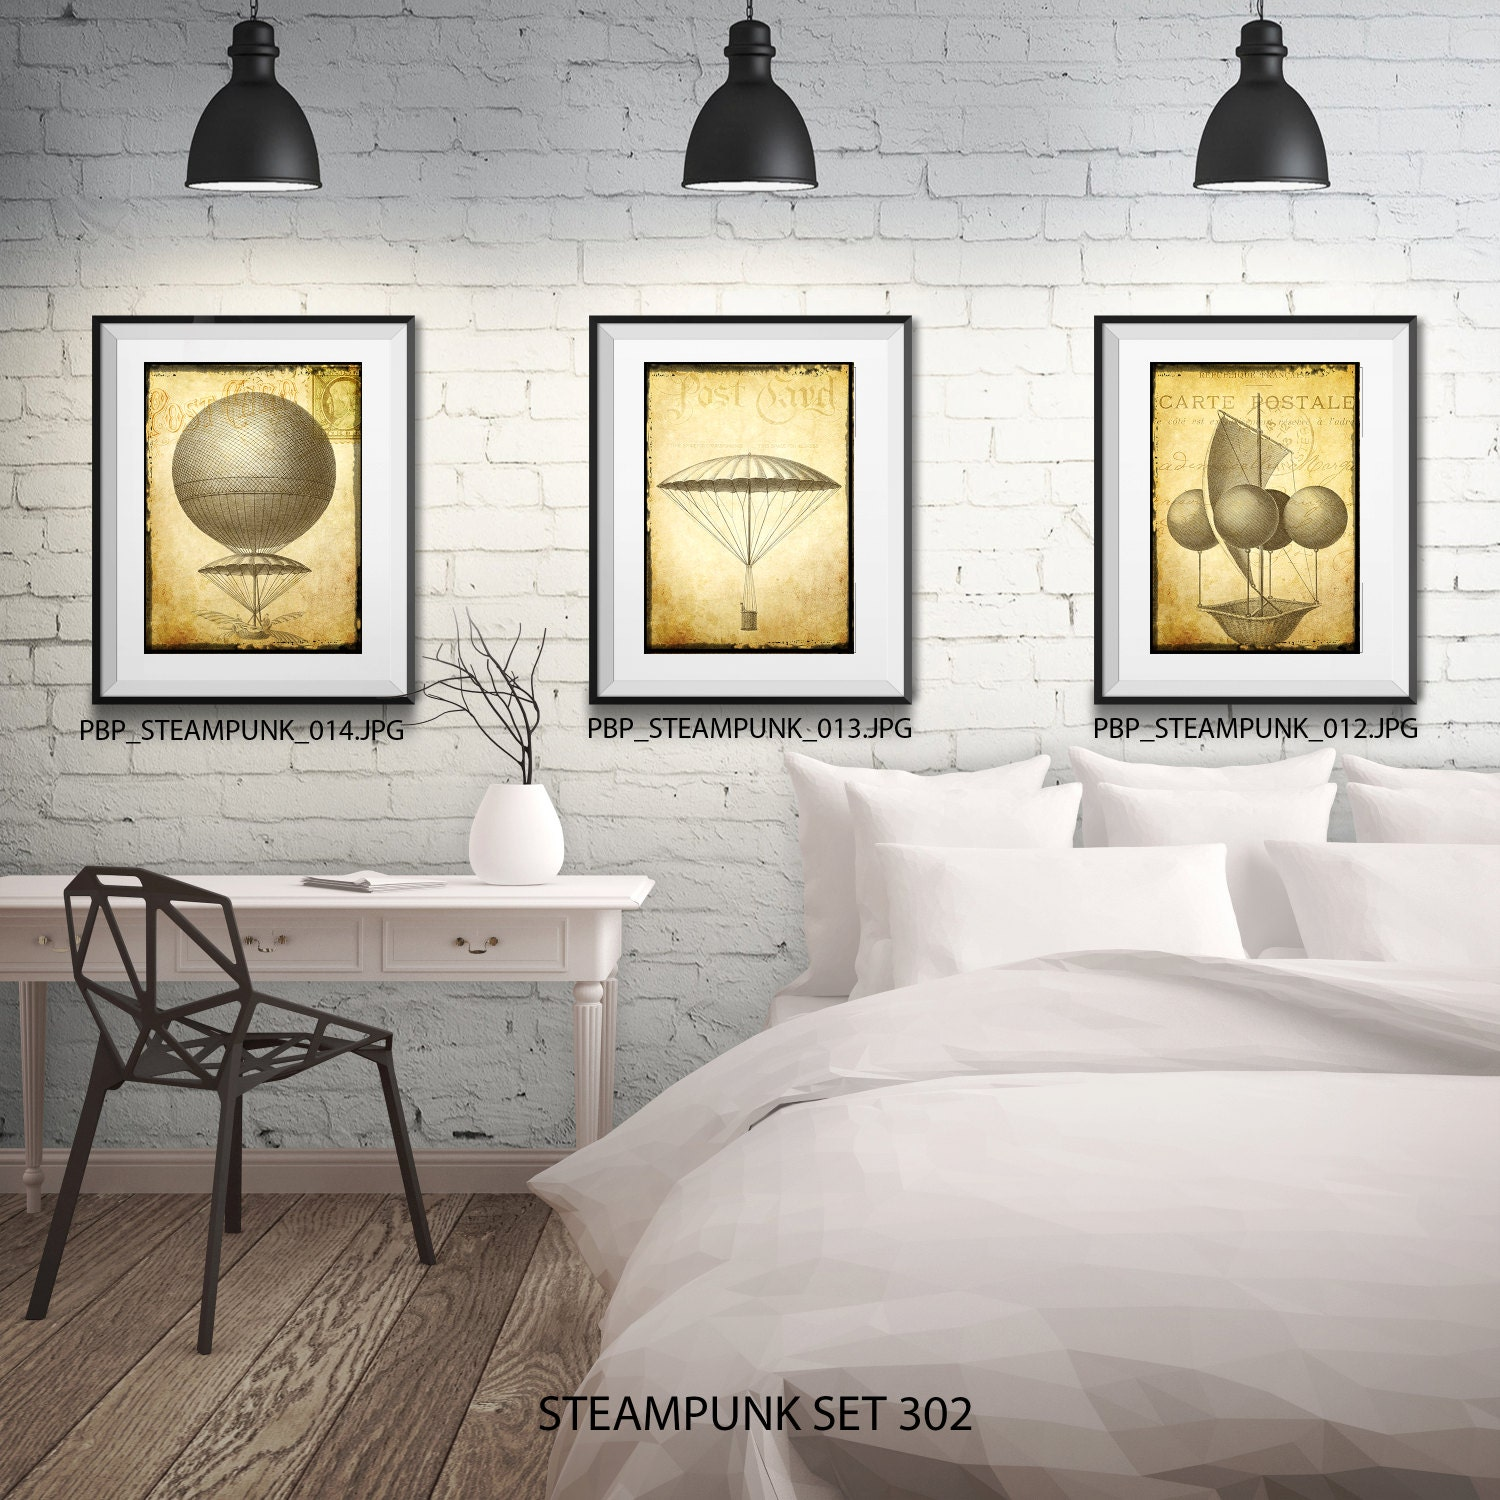 Steampunk Wall Art   3 Prints   Matted And Framed   Free Shipping   Black  Or White Frames   In 4 Sizes   Flying Machine Print